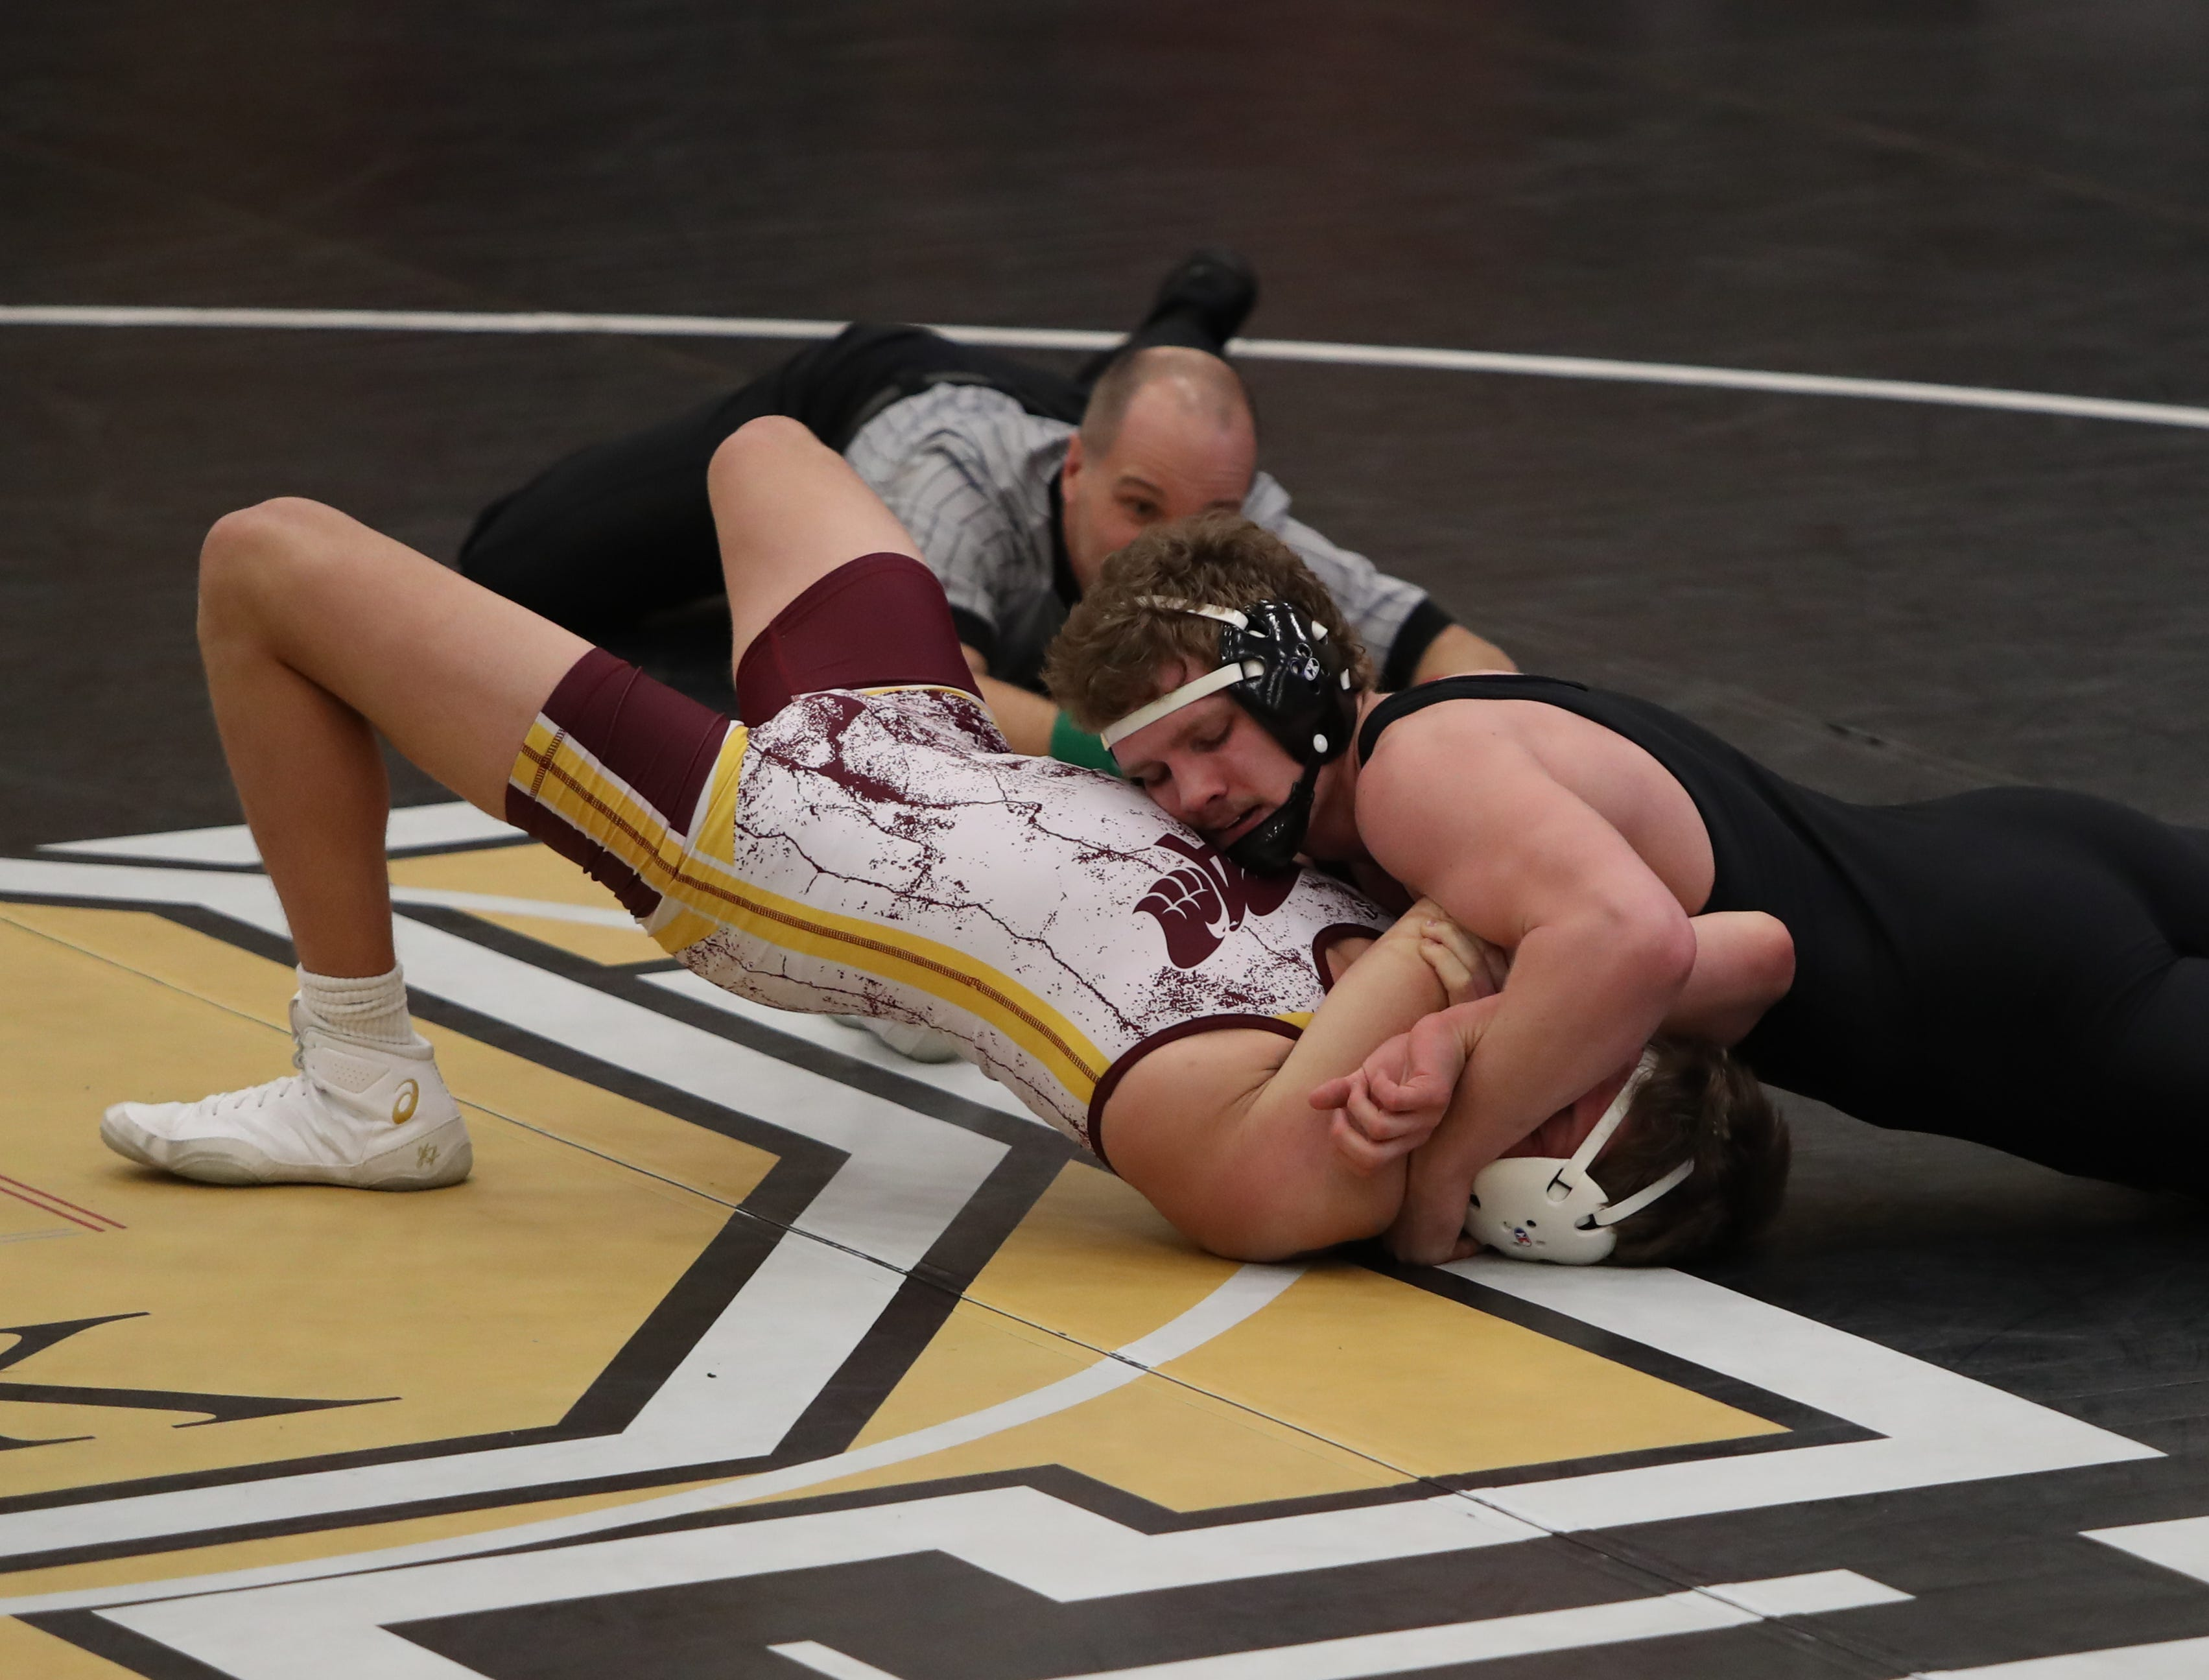 Southeast Polk's Justin Brindley pins Ankeny's Cole Pomrenke in 2:50 in a 182-pound match. Southeast Polk defeated Ankeny 57-17 in a Class 3A regional dual Feb. 6 at Southeast Polk.